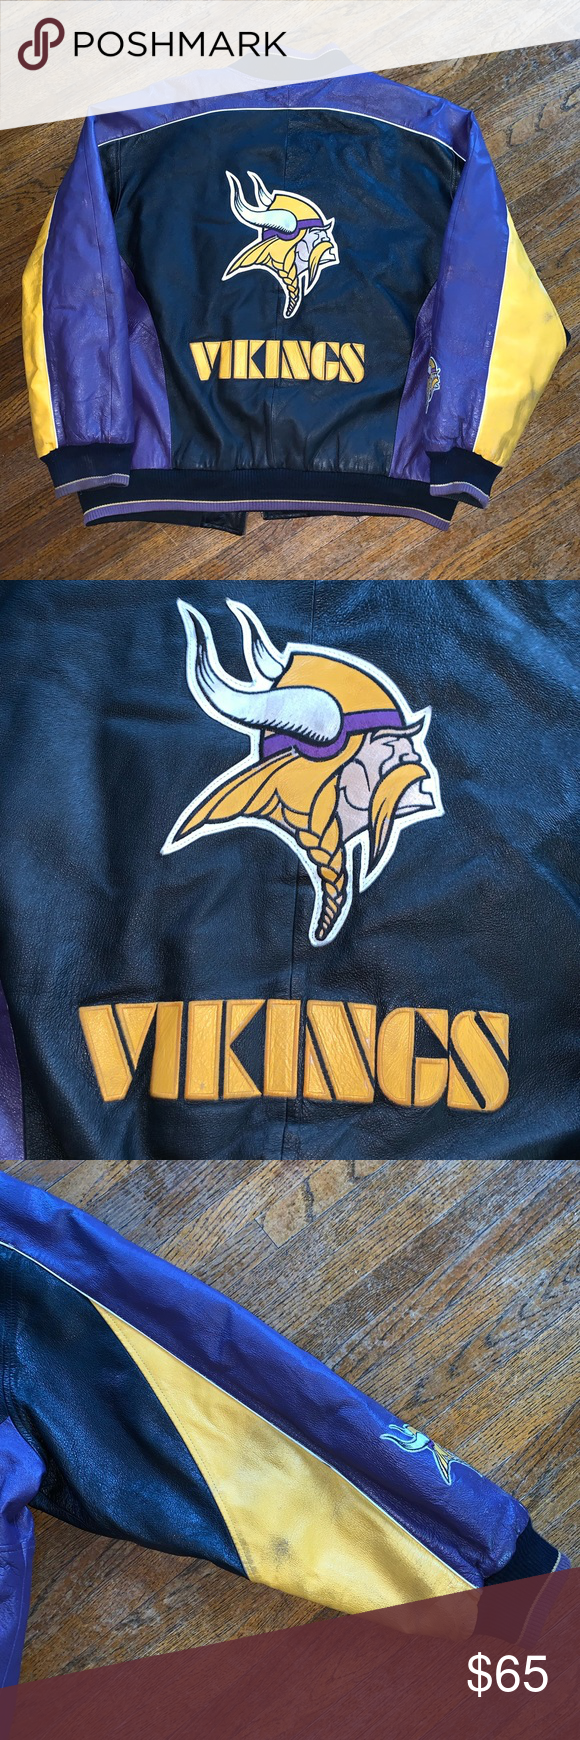 Vintage Minnesota Vikings Leather Jacket Great Pre Owned Condition It Comes From A Smoke Free Home Minor Wear As Pictured Leather Jacket Jackets How To Wear [ 1740 x 580 Pixel ]